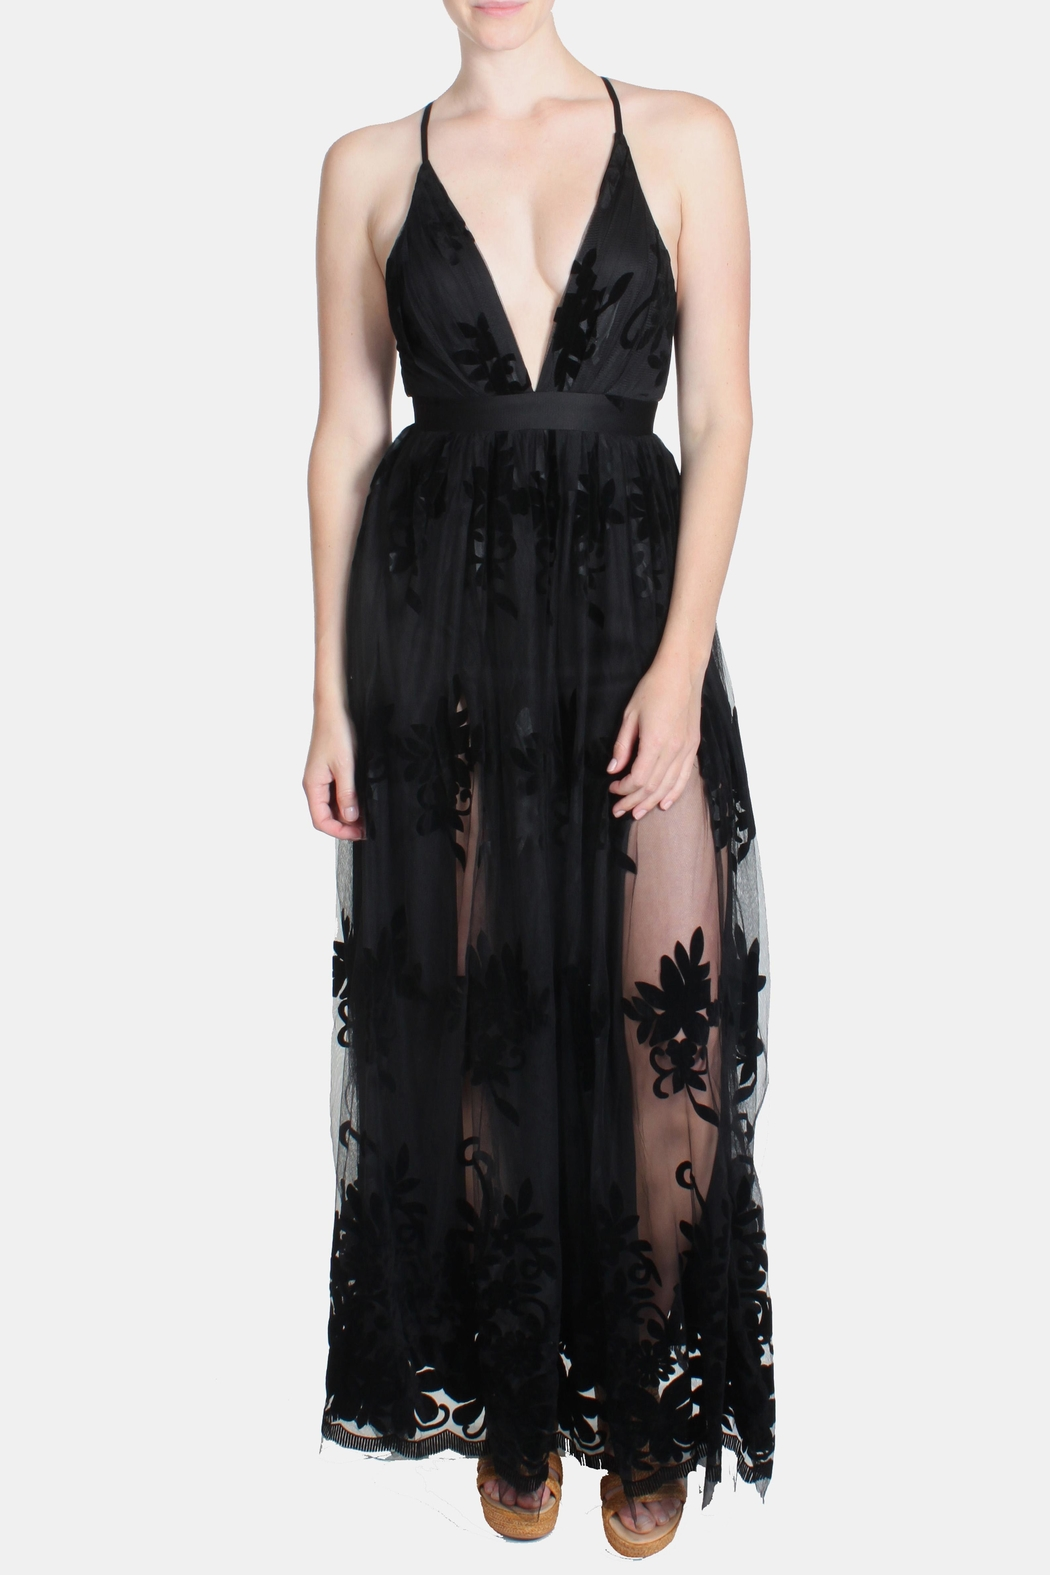 luxxel Black Monochrome Floral-Gown - Front Full Image